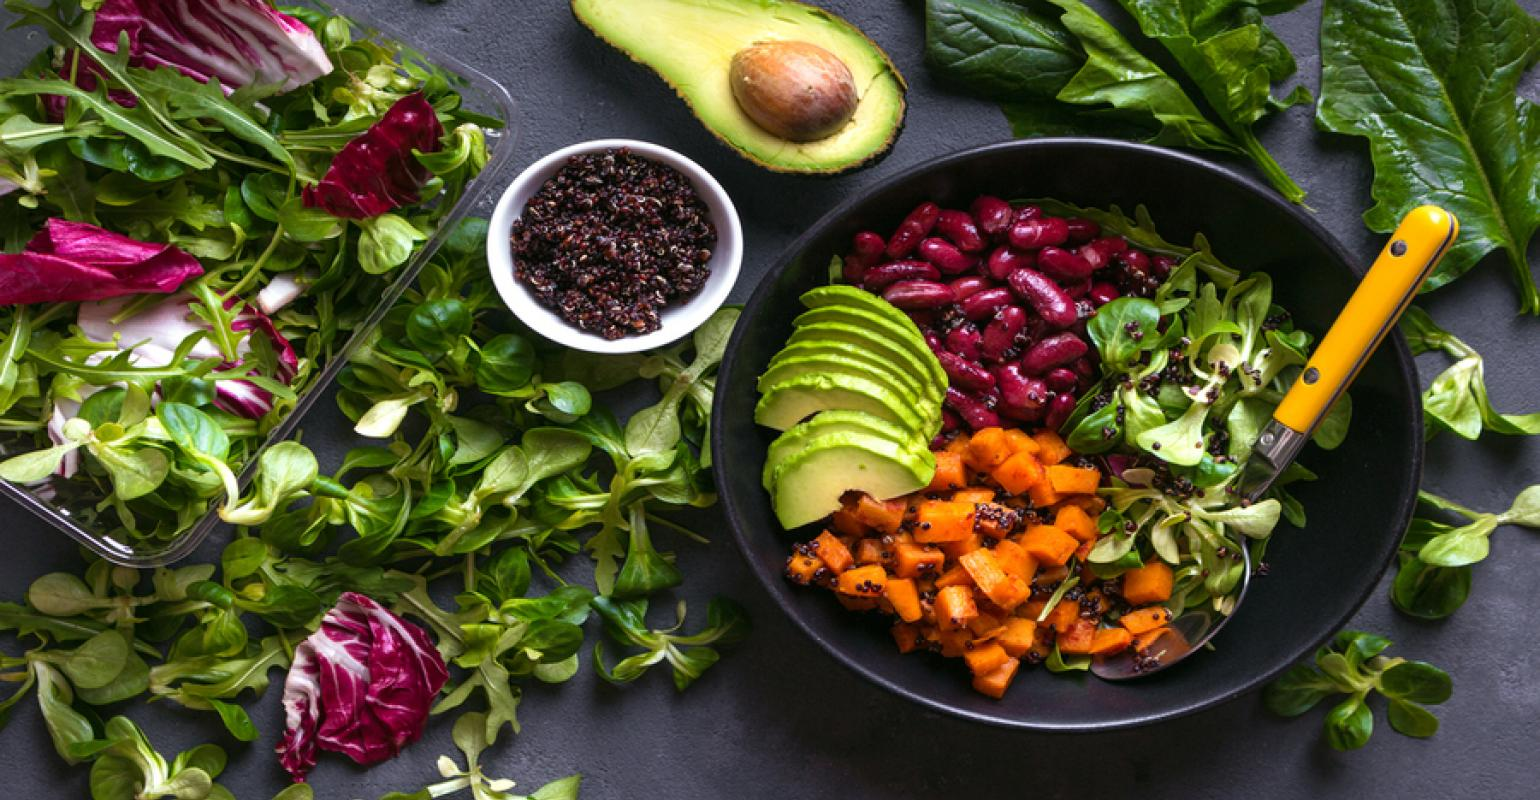 A vegan food bowl with vegetables and fruits around it